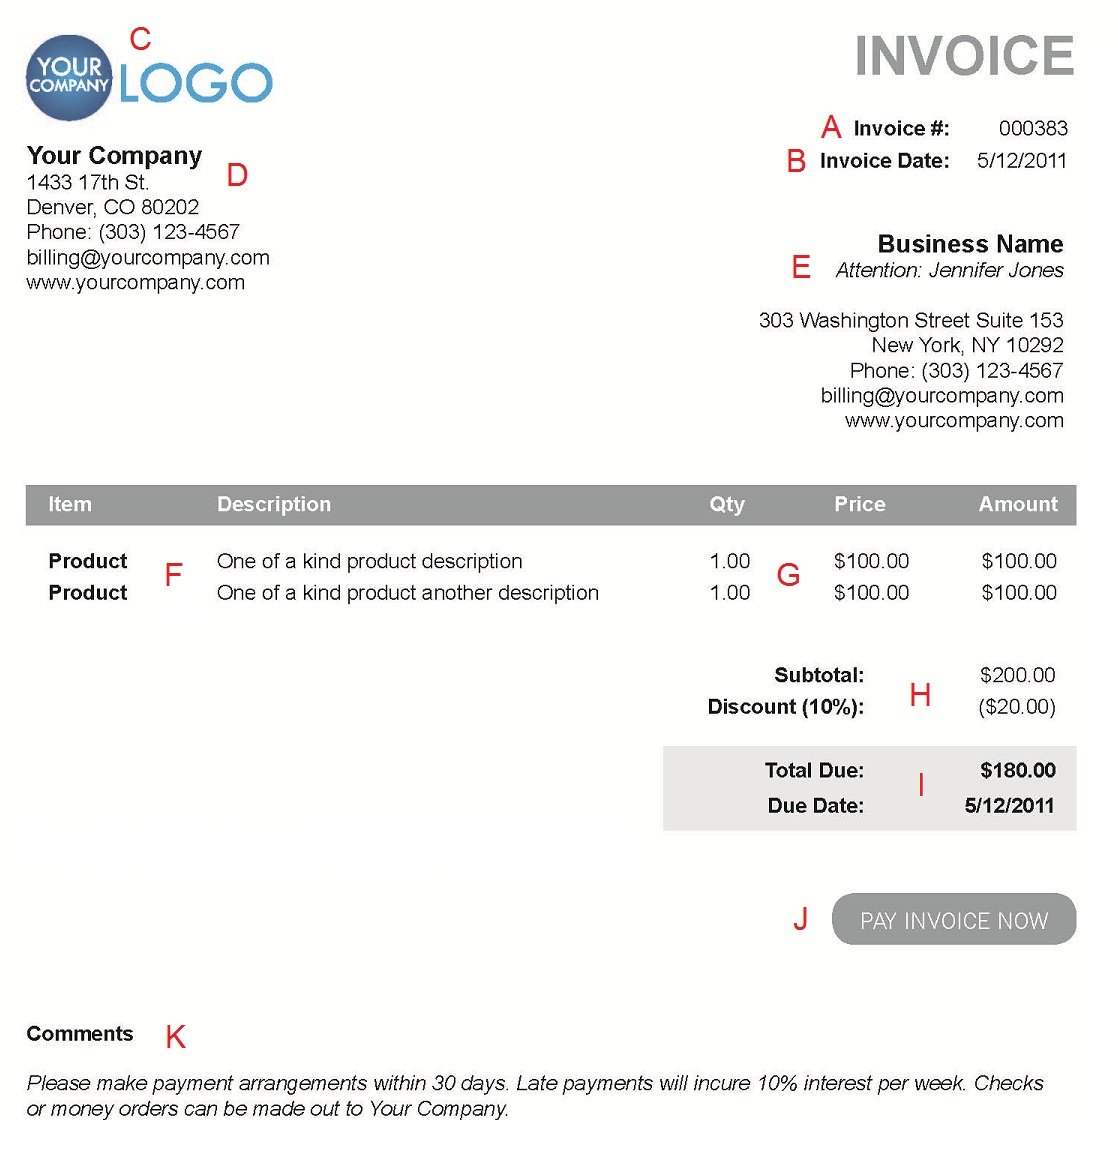 Usdgus  Ravishing The  Different Sections Of An Electronic Payment Invoice With Magnificent A  With Easy On The Eye Freelance Invoice Template Also Free Printable Invoices In Addition Business Invoice And Online Invoice Generator As Well As Creating An Invoice Additionally Quickbooks Invoice From Paysimplecom With Usdgus  Magnificent The  Different Sections Of An Electronic Payment Invoice With Easy On The Eye A  And Ravishing Freelance Invoice Template Also Free Printable Invoices In Addition Business Invoice From Paysimplecom